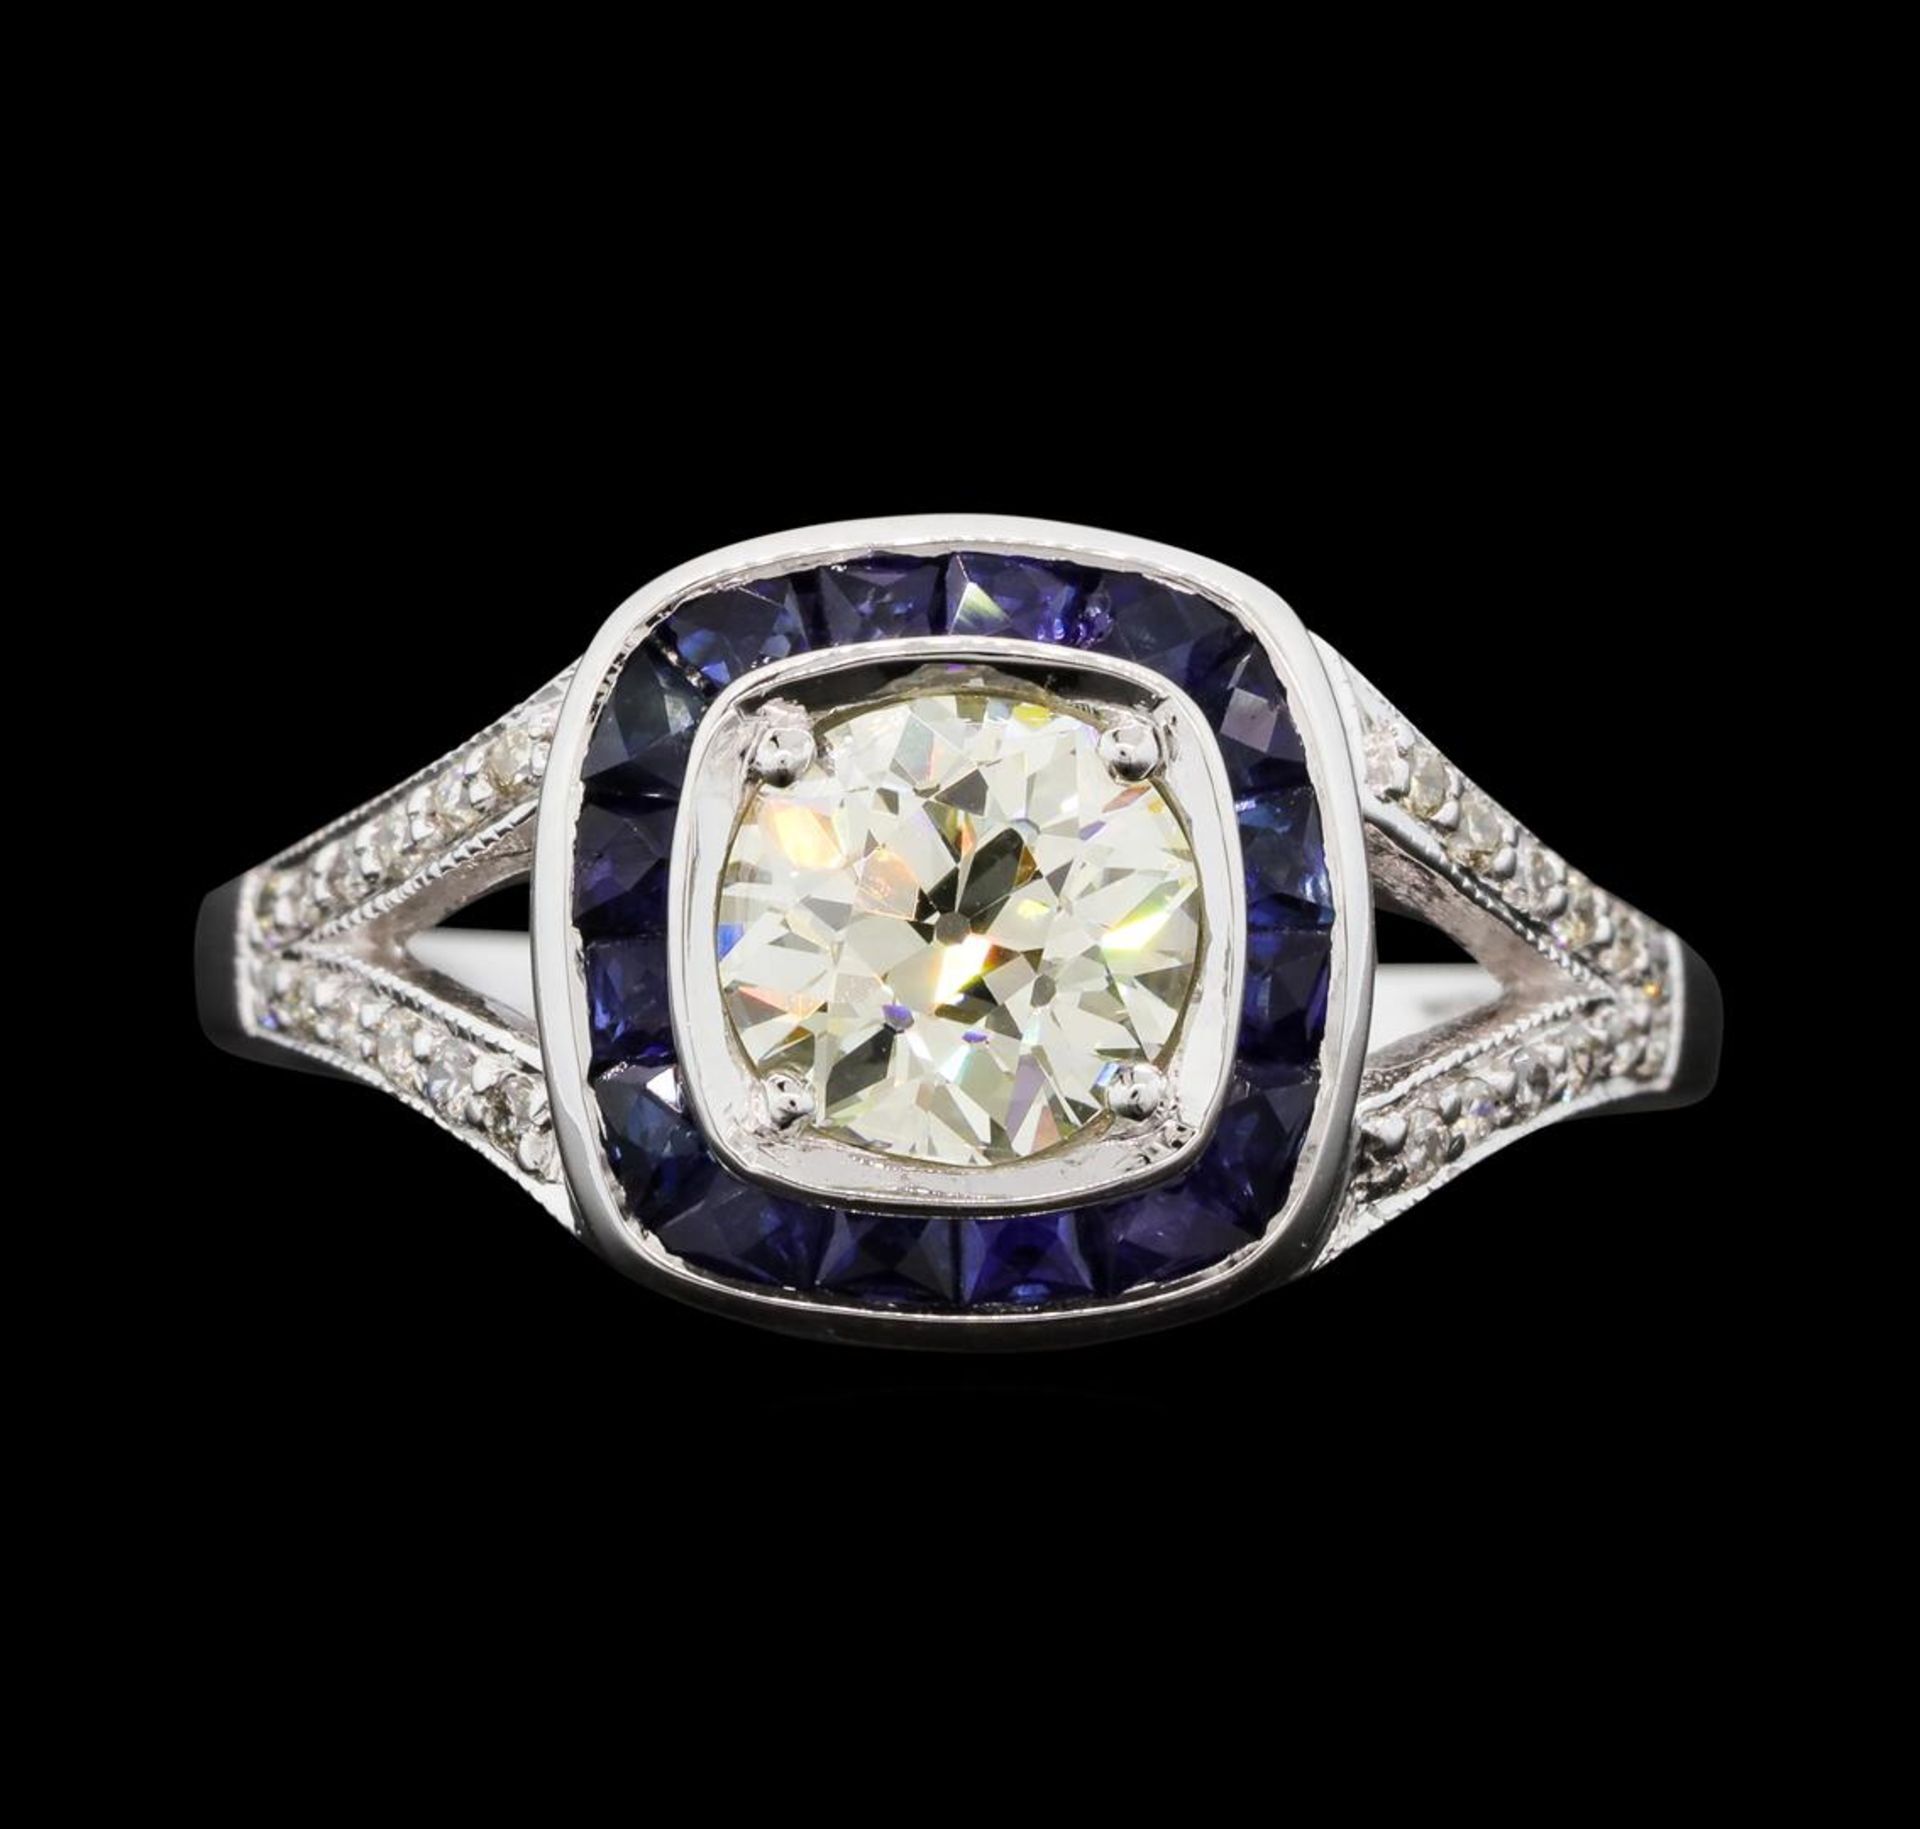 1.05 ctw Diamond And Sapphire Ring - 18KT White Gold - Image 2 of 5